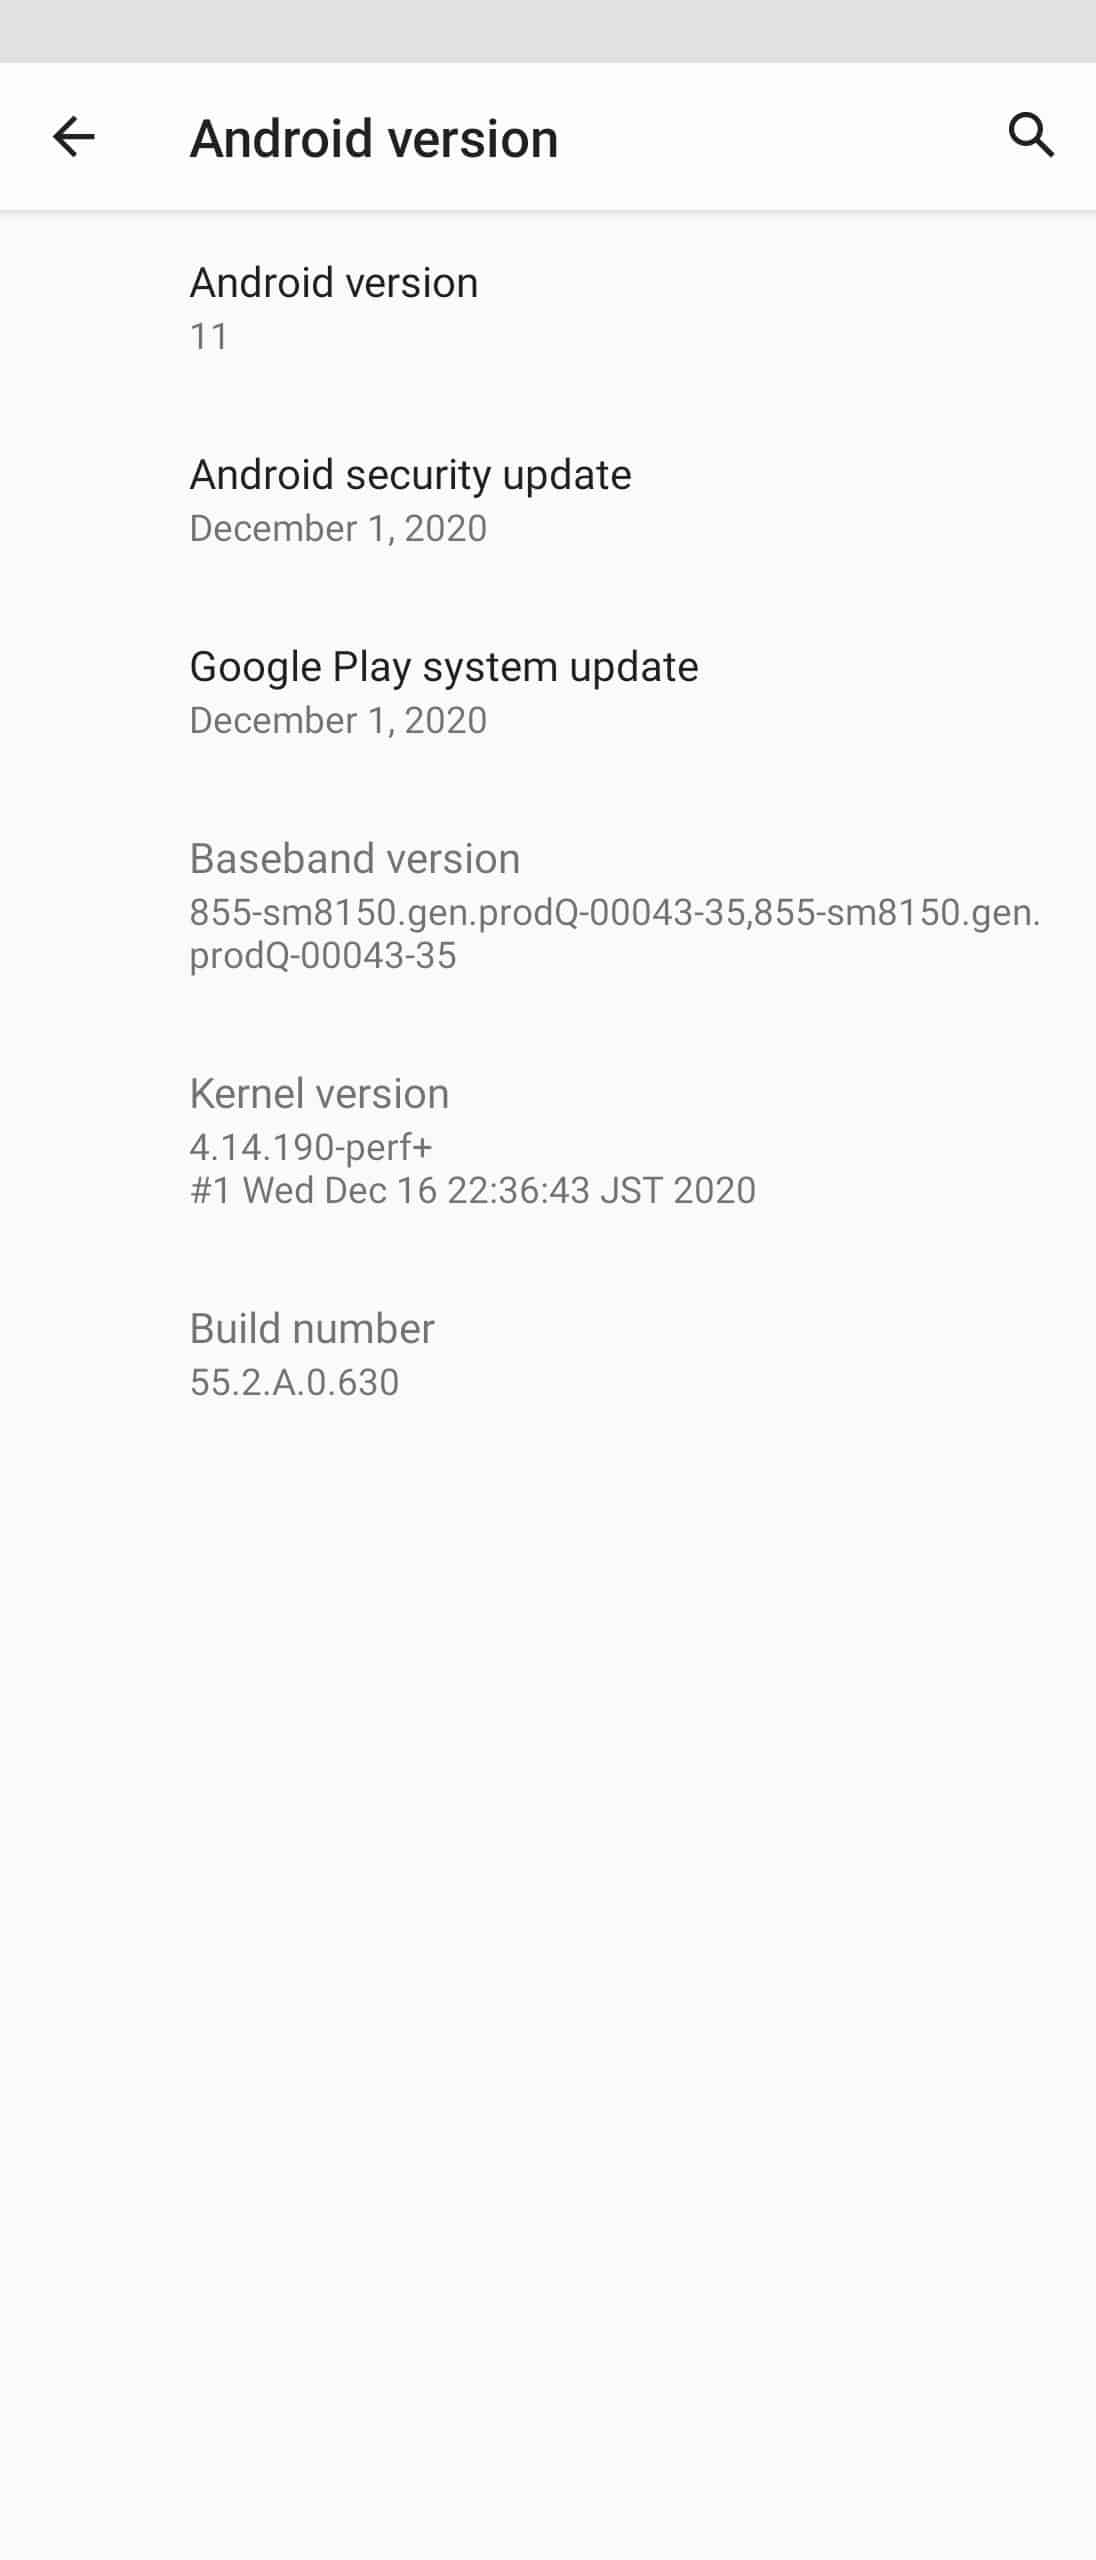 Xperia 1 android 11 update